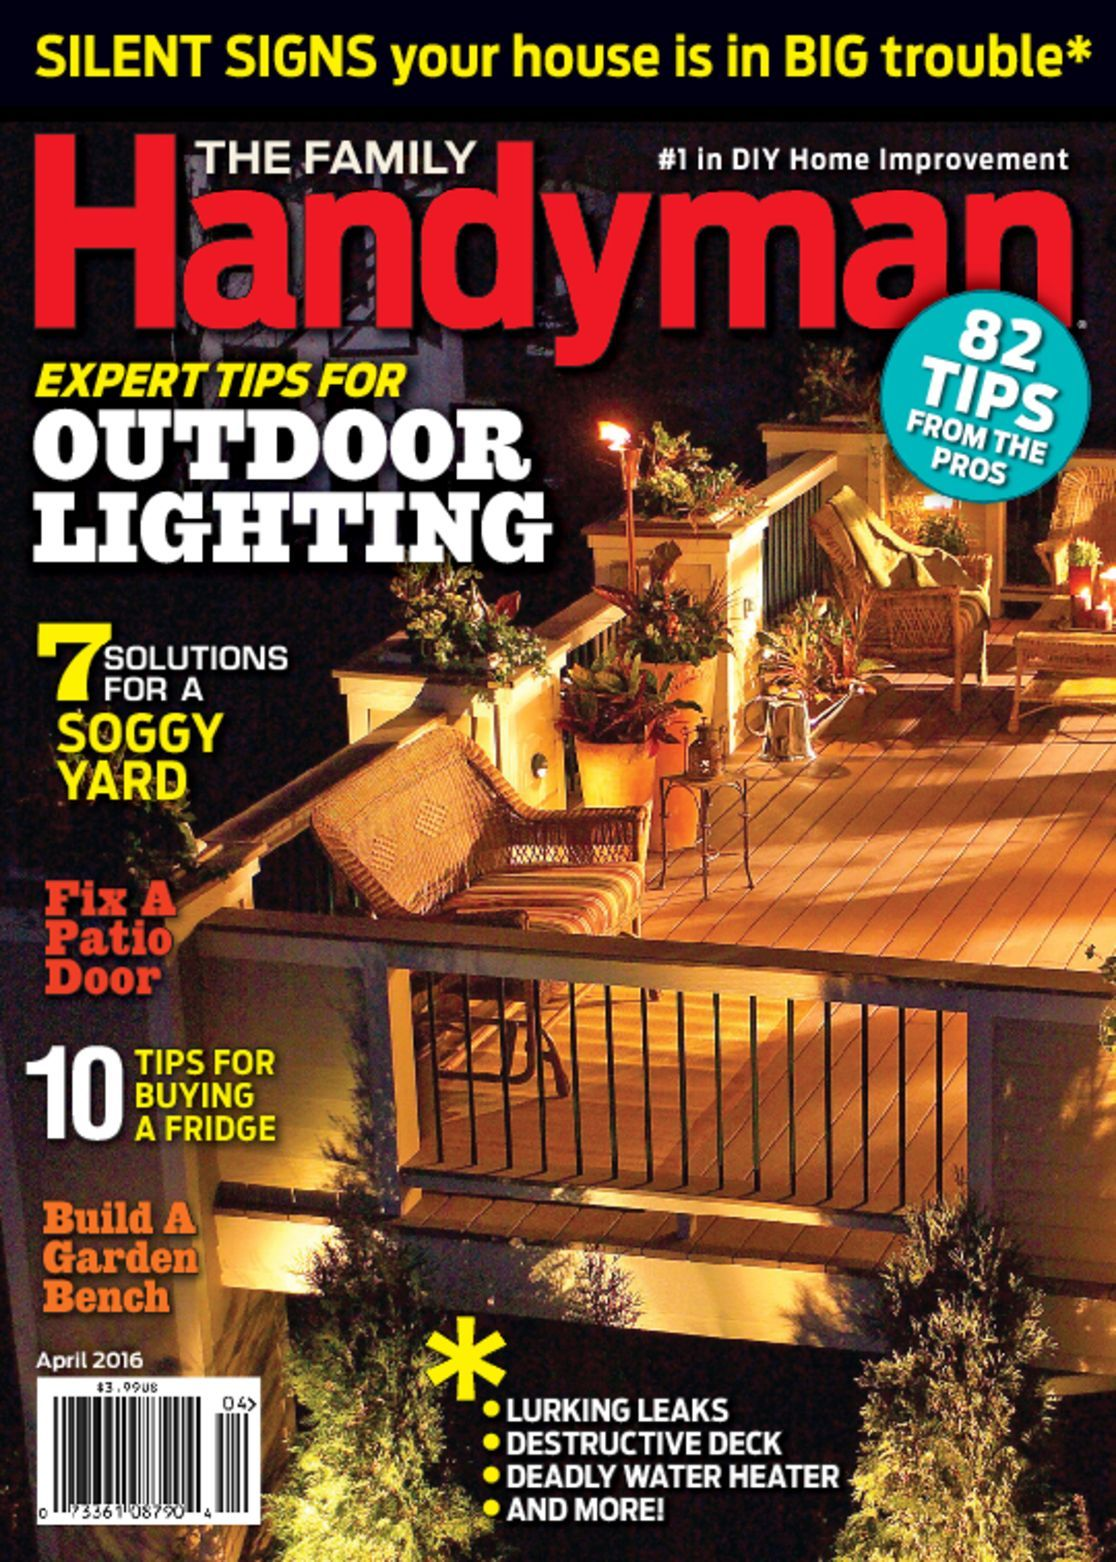 Best Value Auto >> The Family Handyman | Serious DIY Projects- DiscountMags